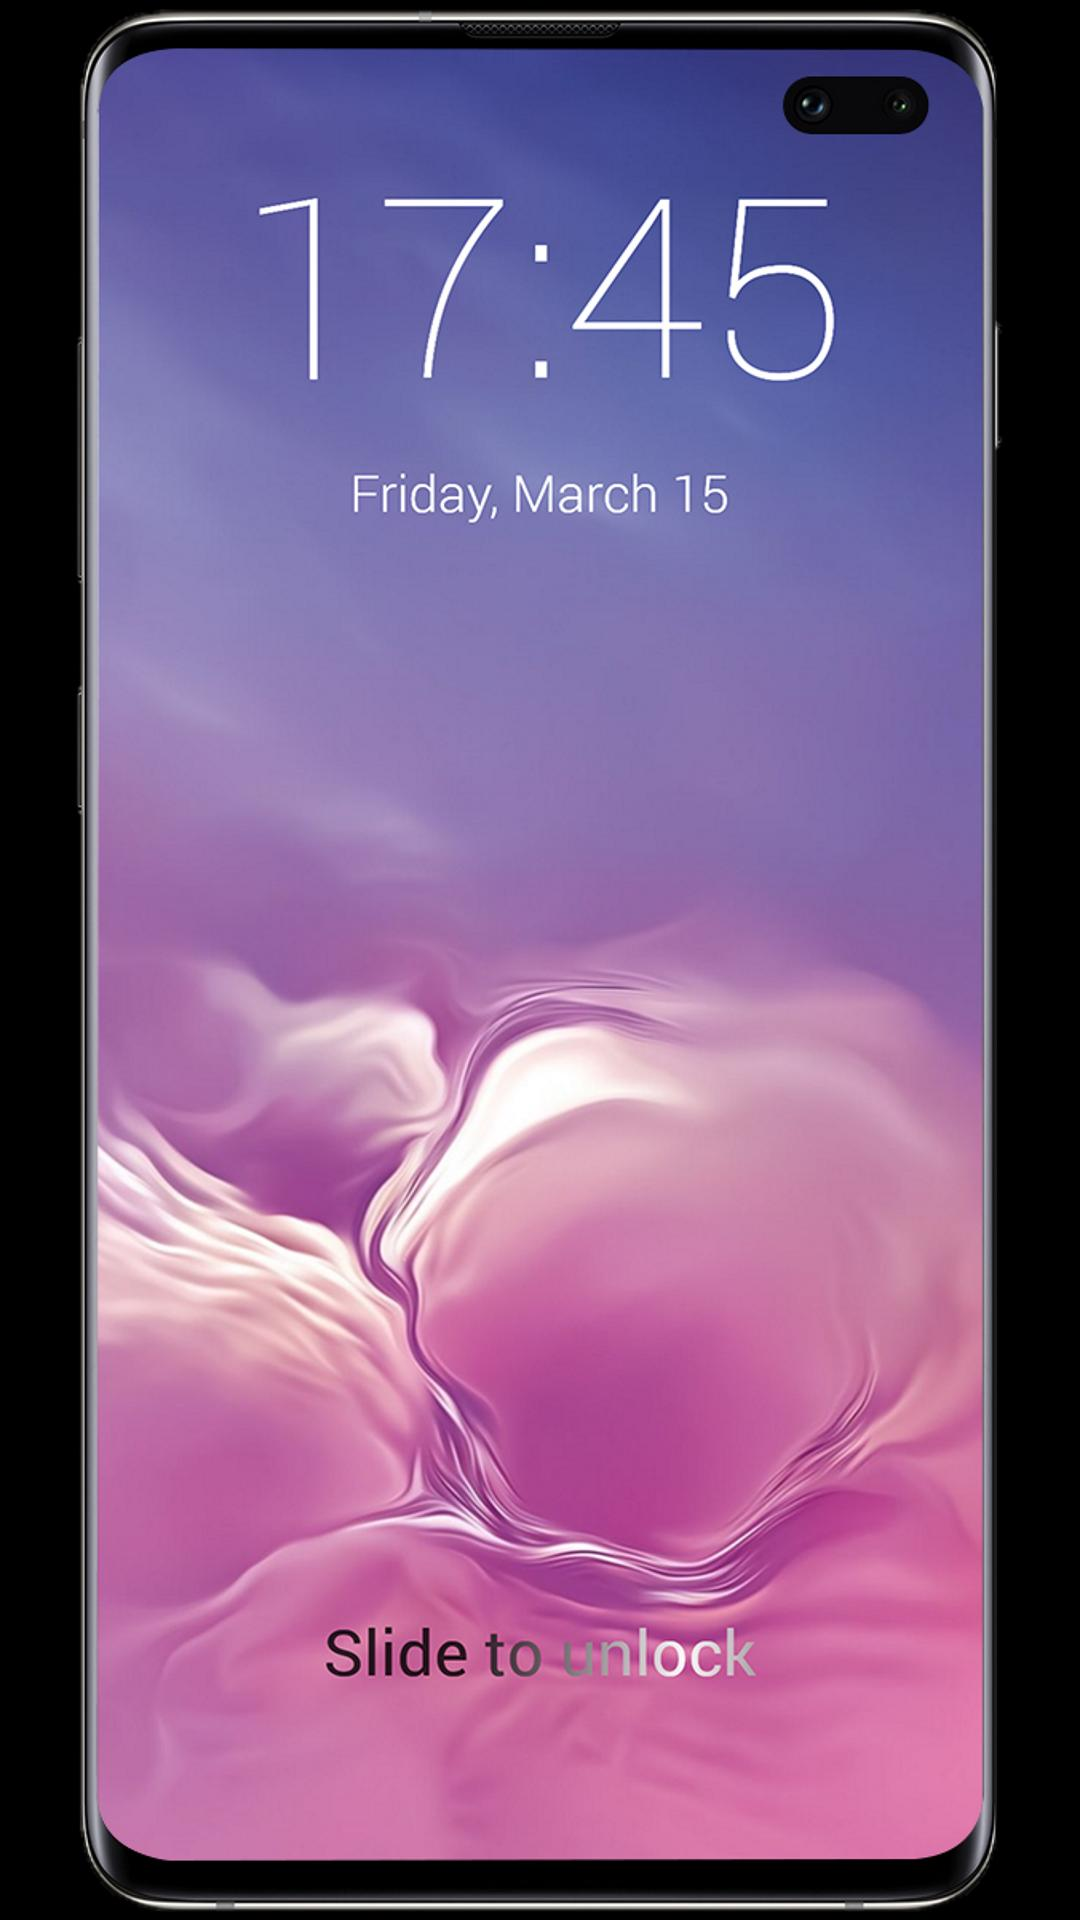 Lock Screen Wallpapers For Galaxy S10 For Android Apk Download